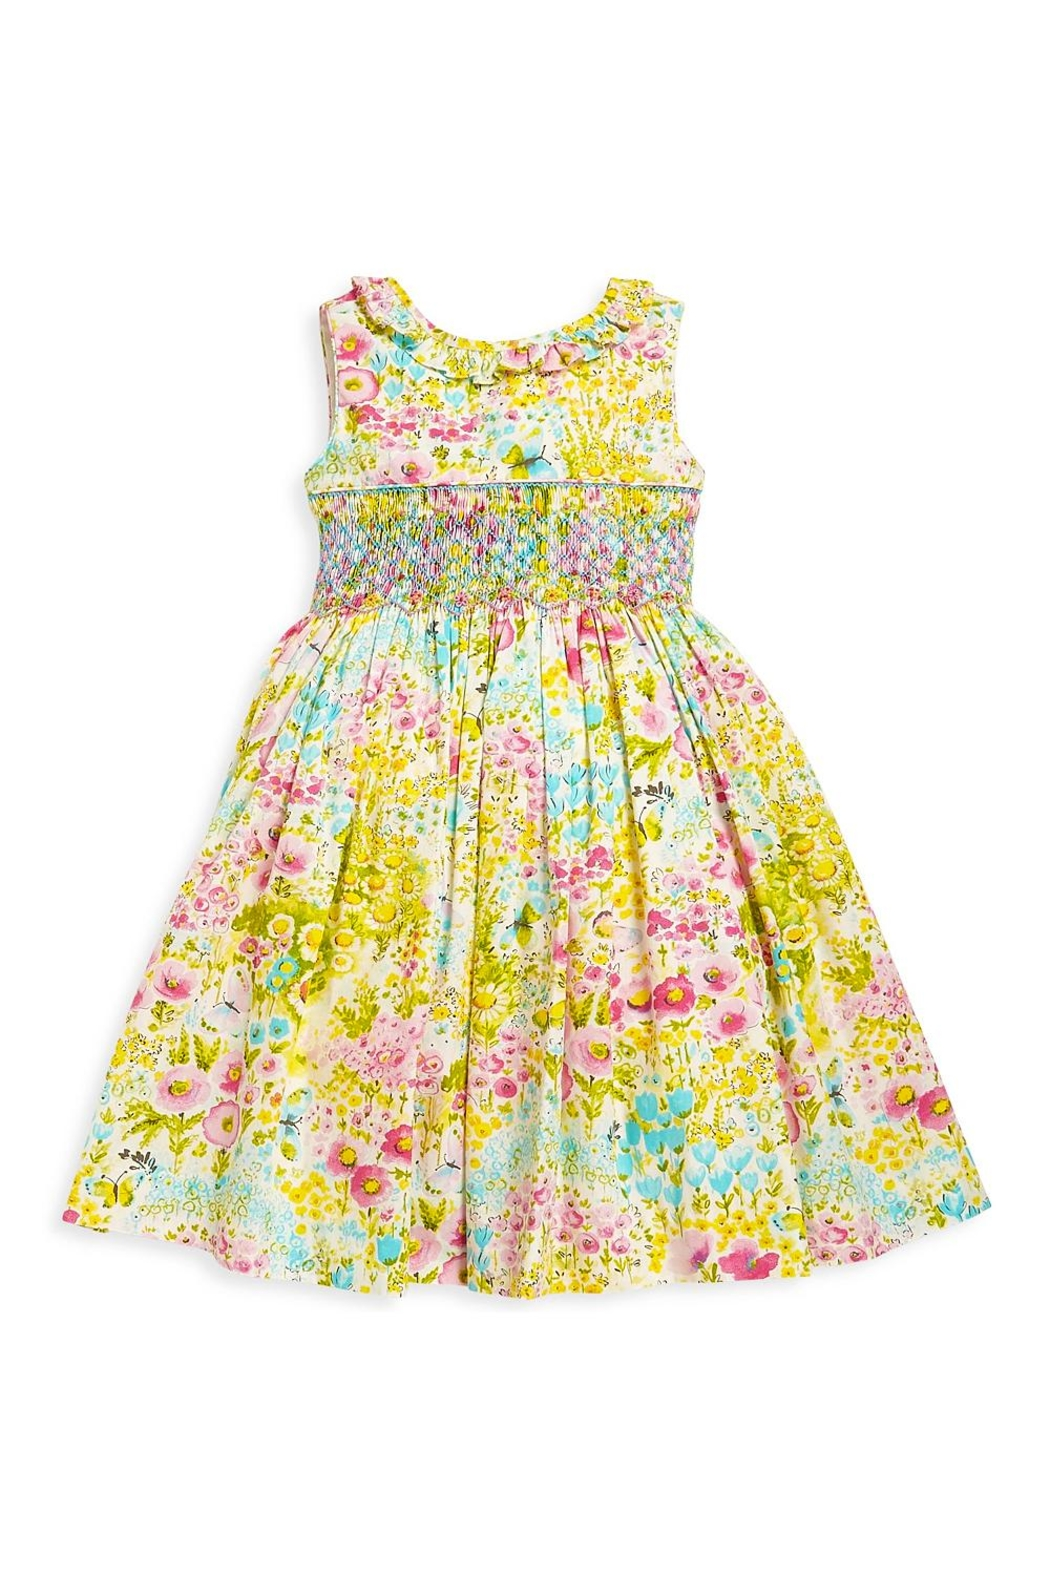 Luli & Me Garden Smocked Dress - Front Cropped Image